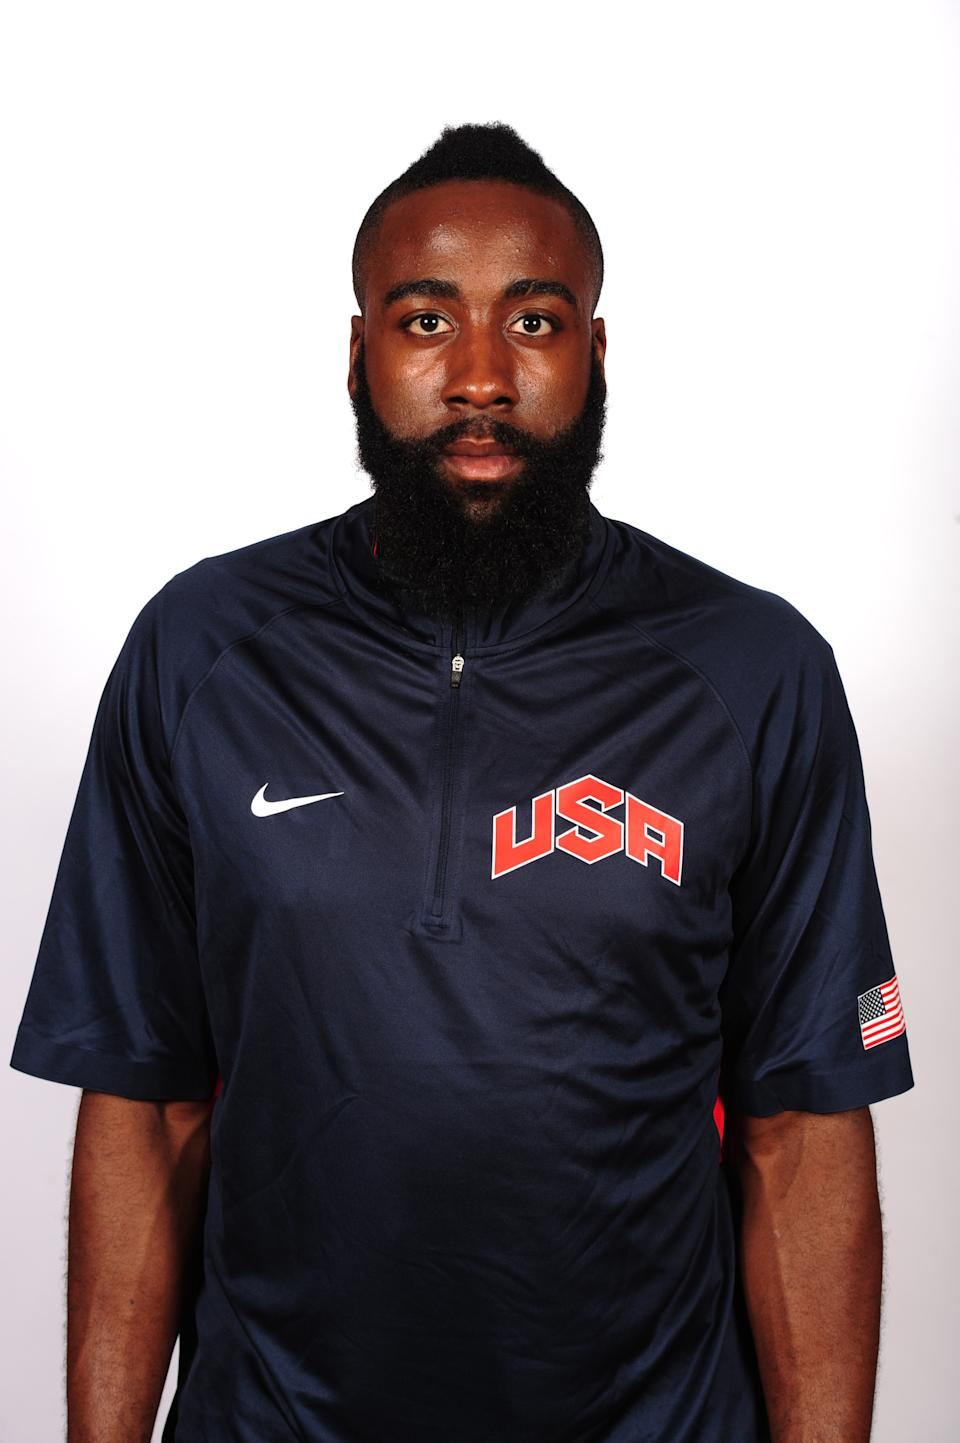 James Harden, the 2012 NBA Sixth Man of the Year, will be joining Oklahoma City Thunder teammates Kevin Durant and Russell Westbrook on the 2012 USA Basketball Men's National Team. (Photo by Andrew D. Bernstein/NBAE via Getty Images)